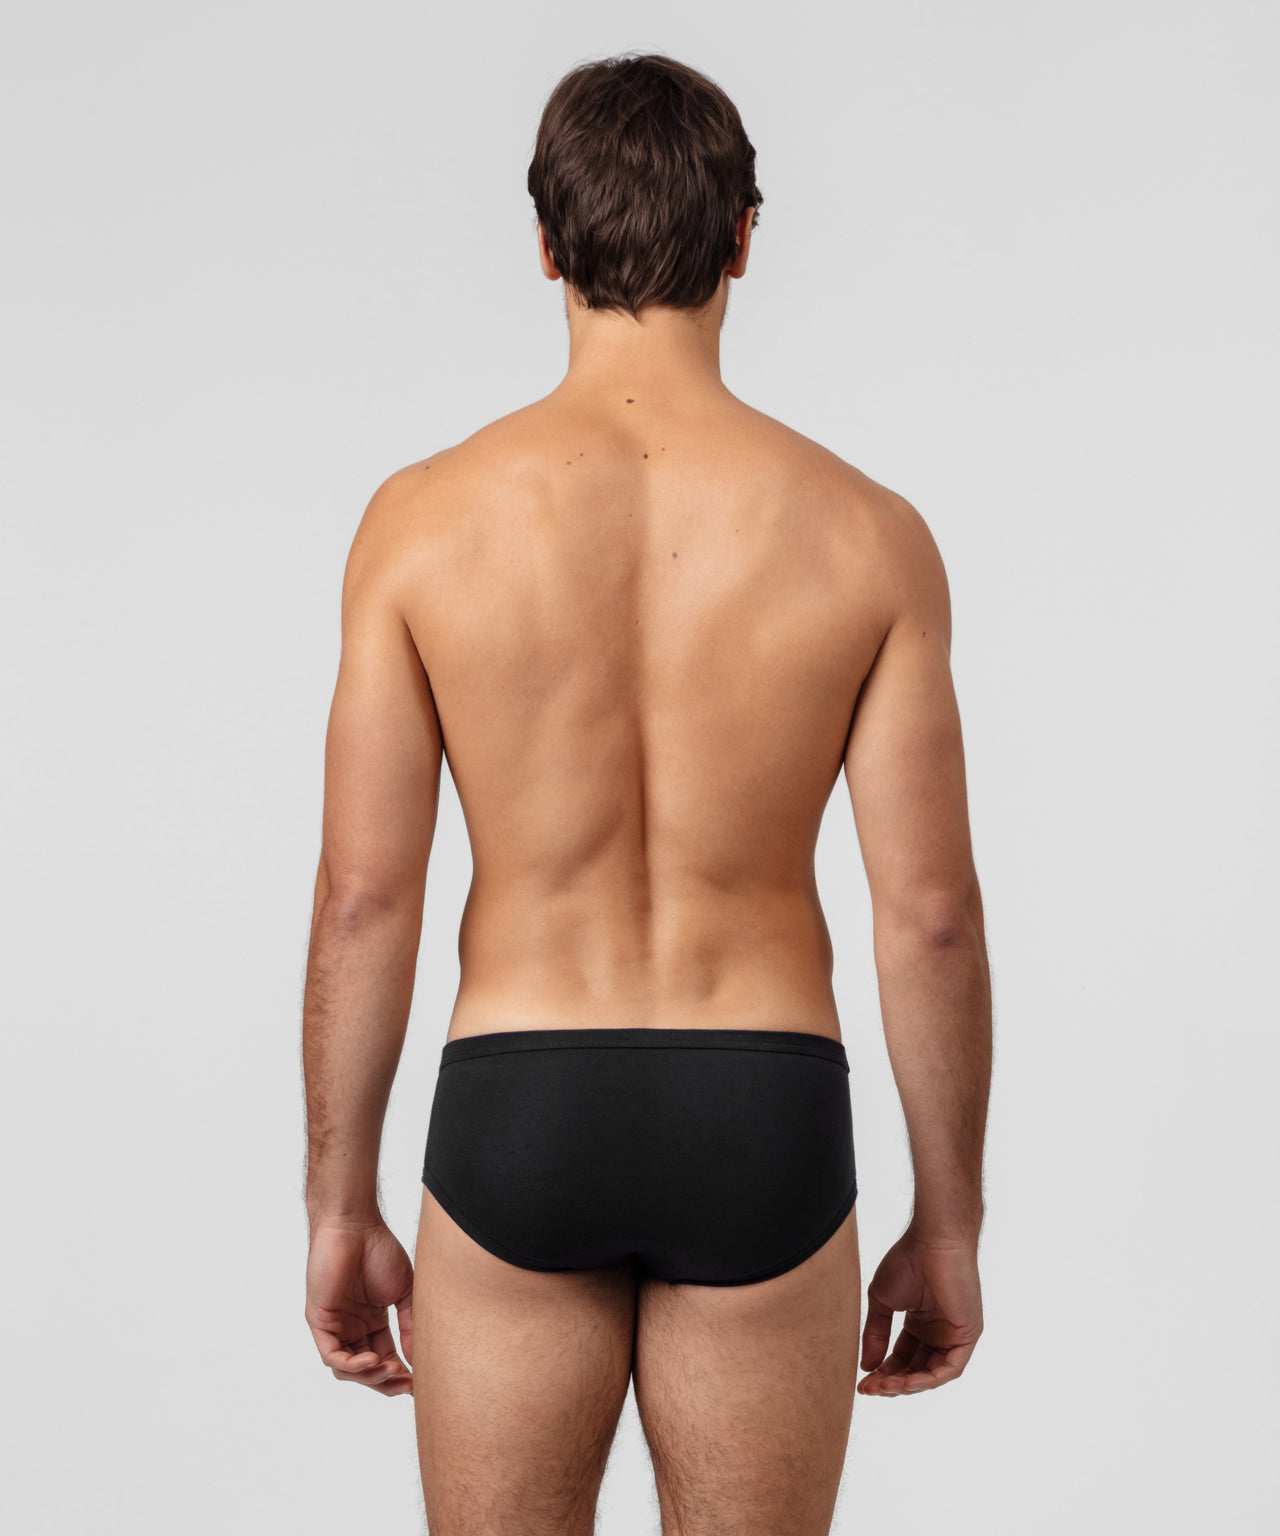 747 Y-Front Briefs Kit - black